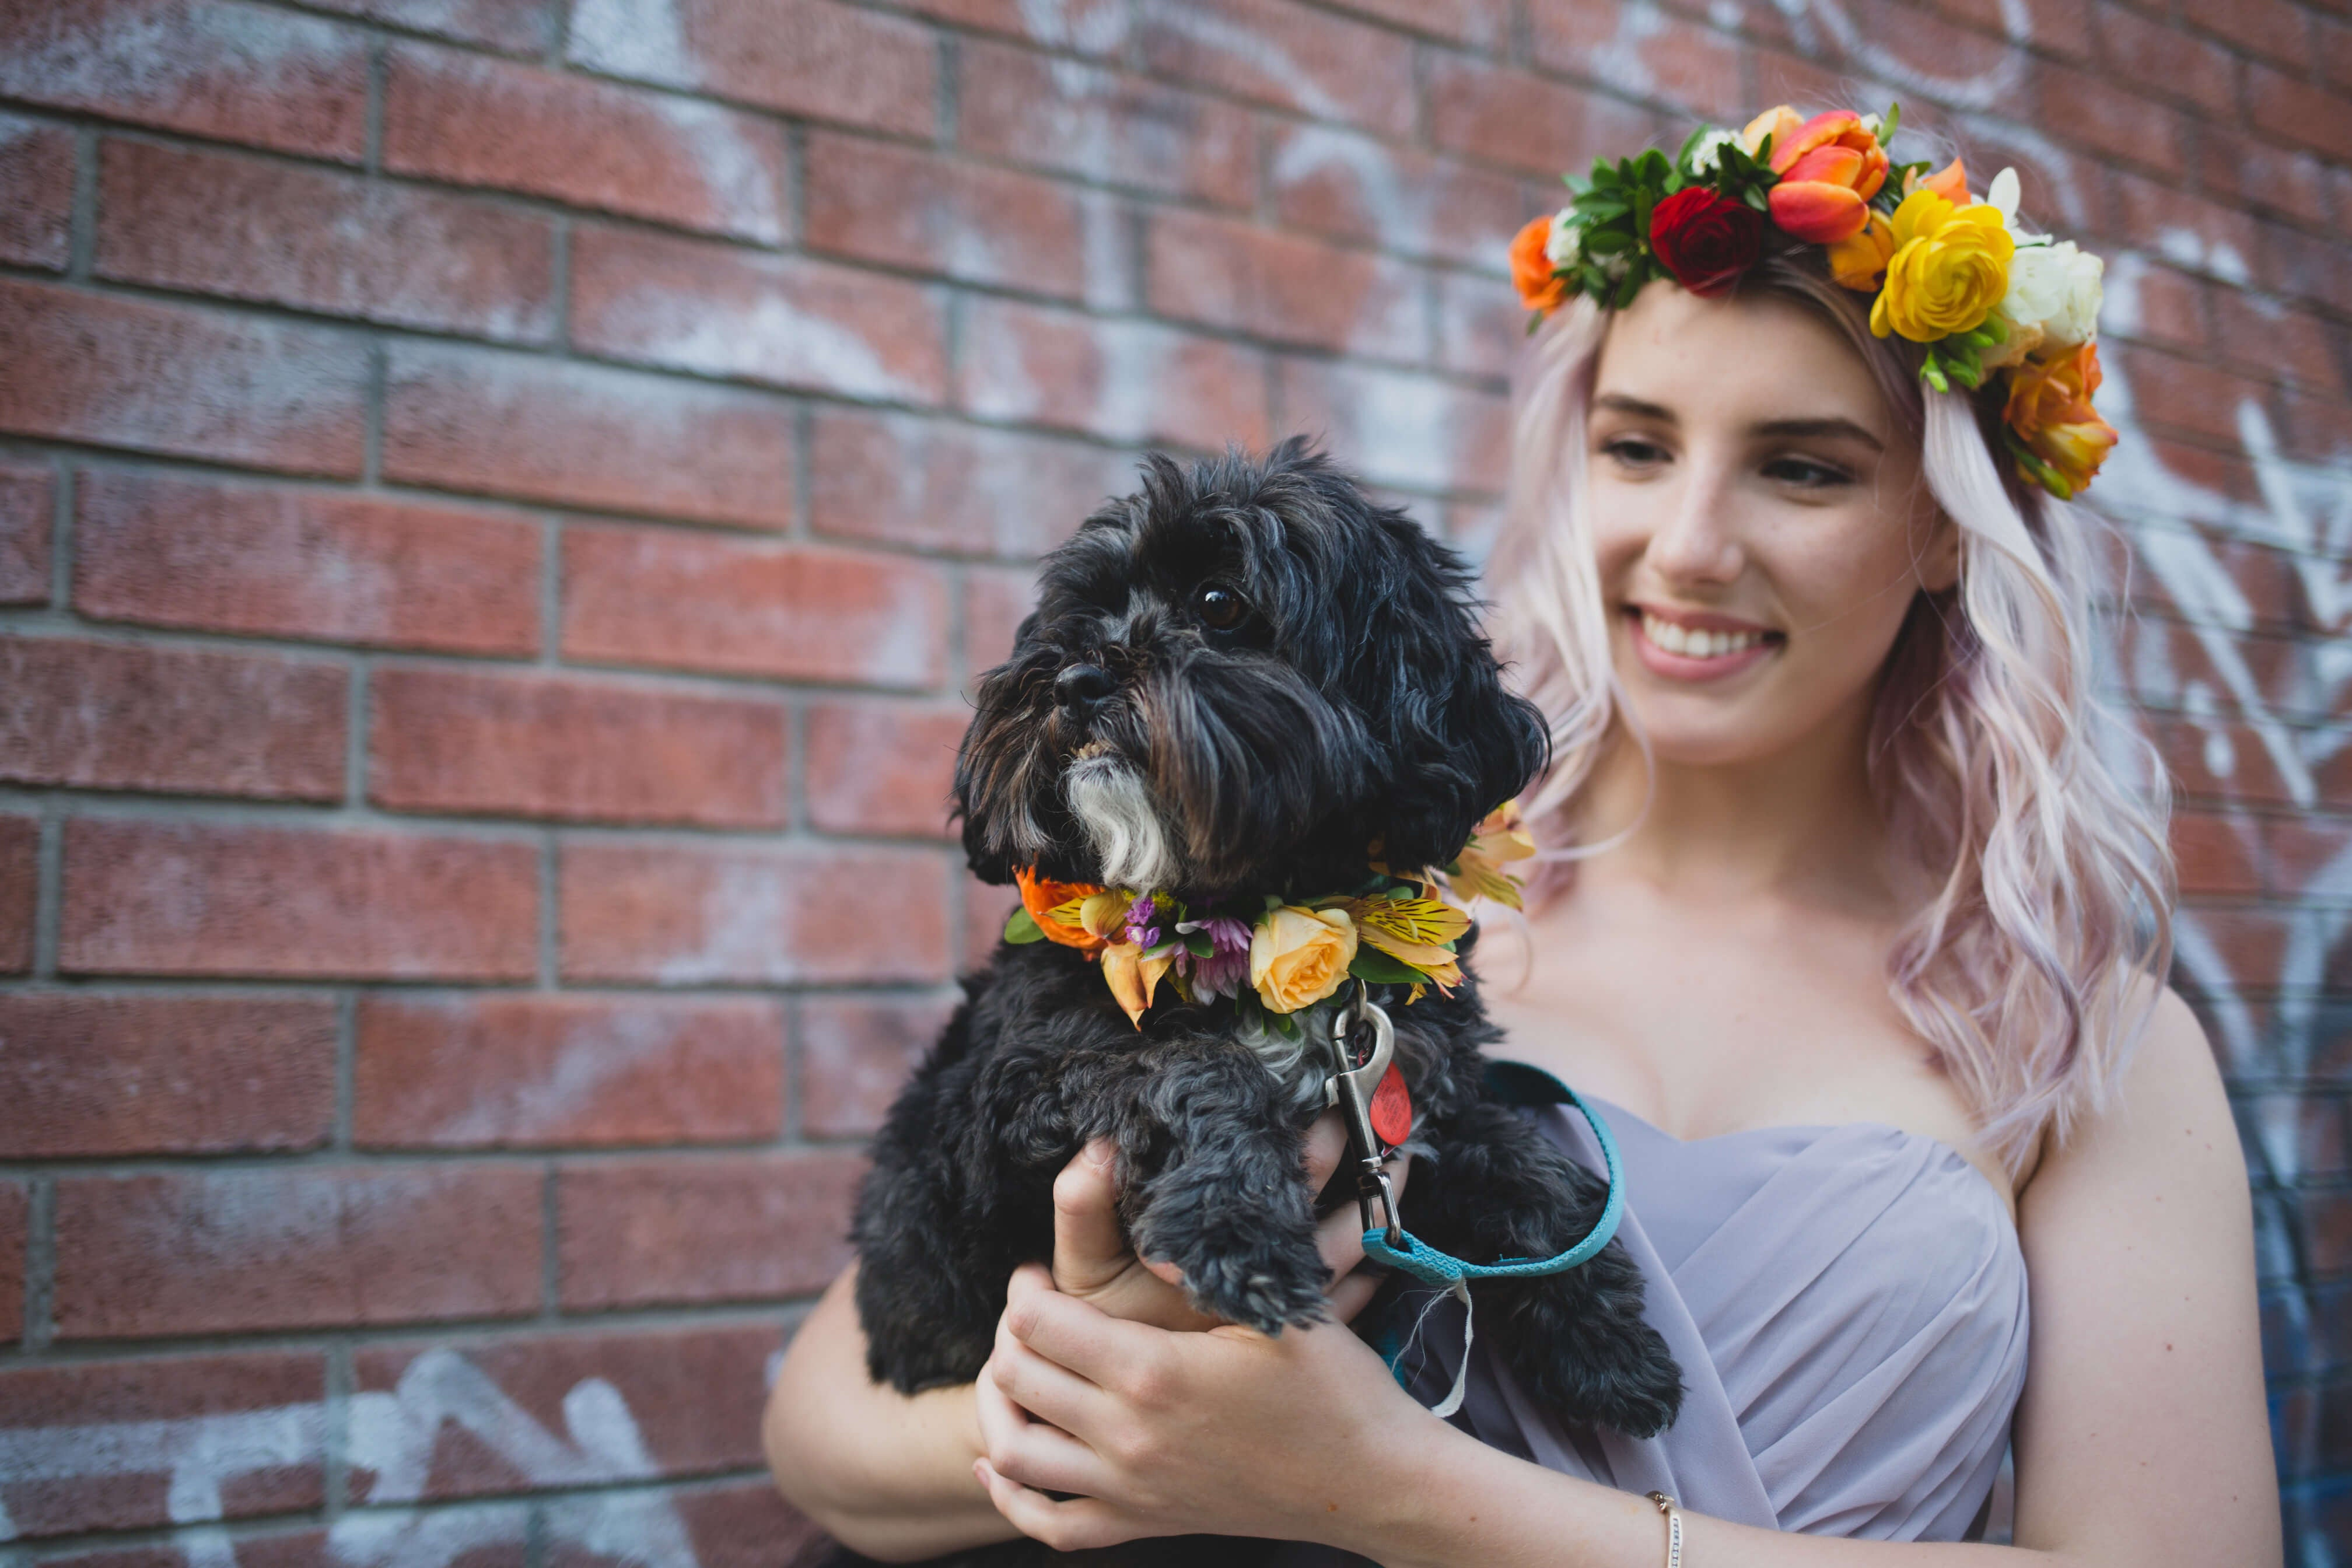 Toronto Florist - Flower Crown - Wedding Flowers